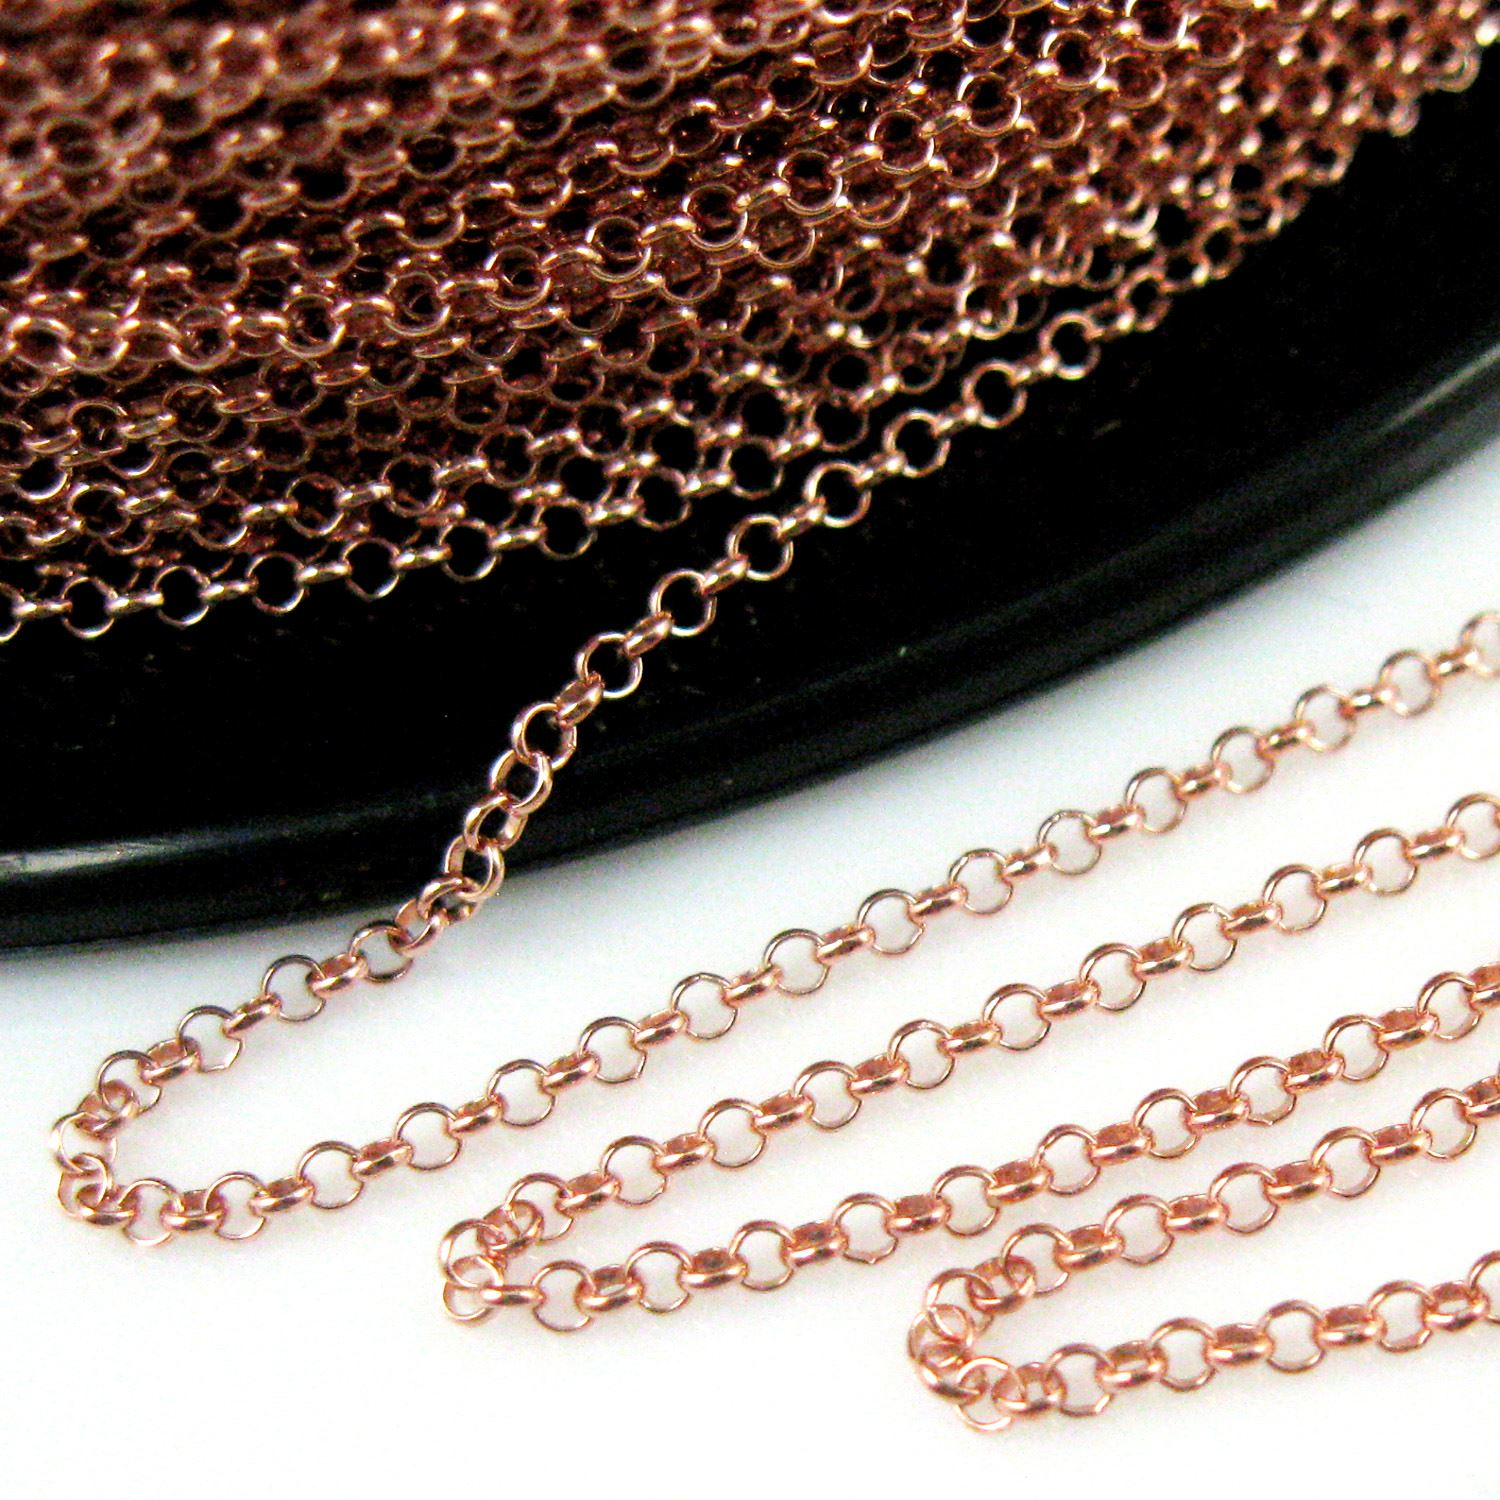 Rose Gold plated over Sterling Silver Chain - Rolo Chain-Unfinished Bulk Chain -1mm Rolo Chain